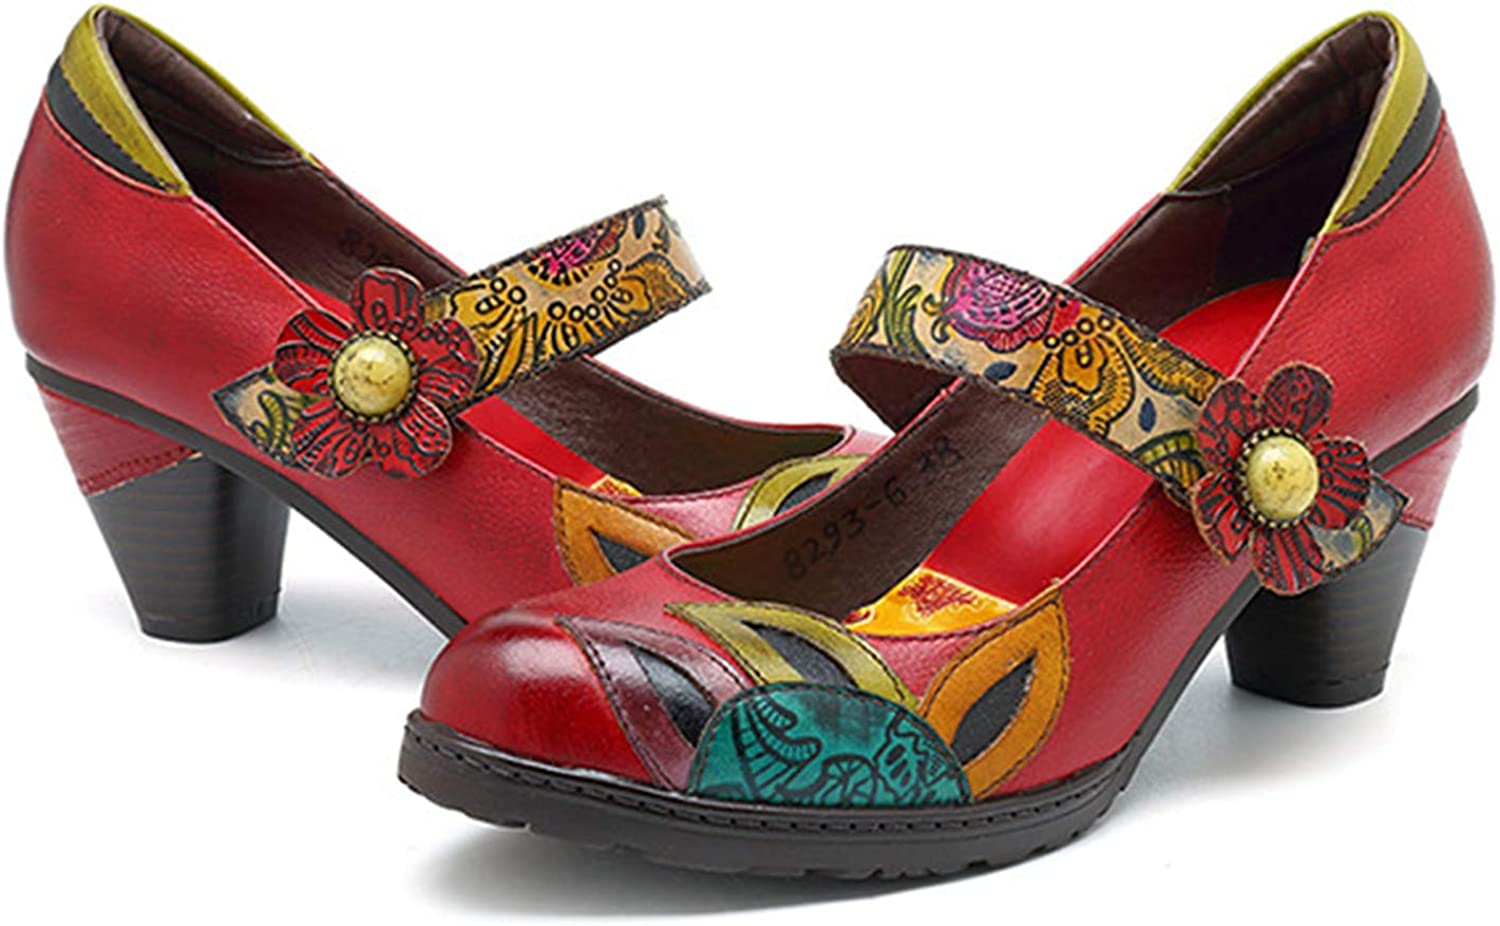 Crazycatz Women's colorful Flower Vintage Mary Jane Leather shoes Block Heel